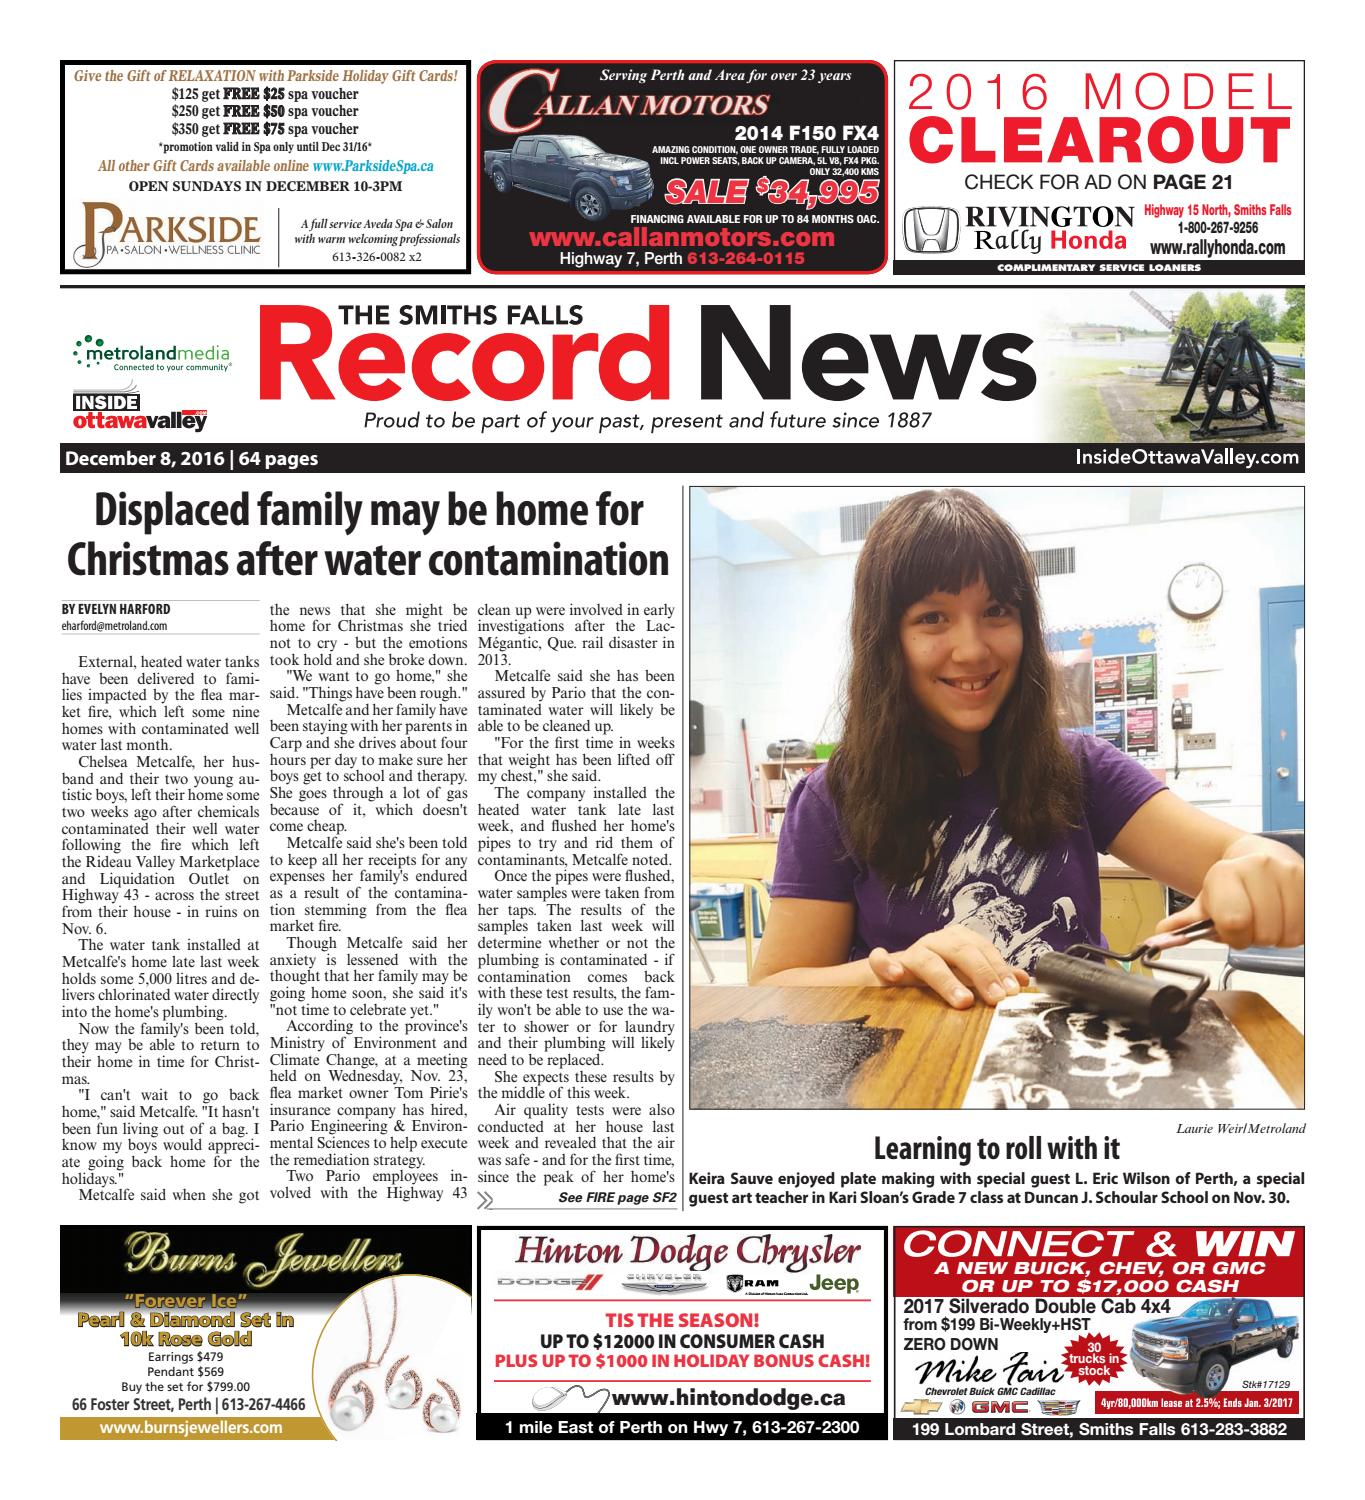 Smithsfalls120816 by Metroland East - Smiths Falls Record News - issuu e211eb898b2a5